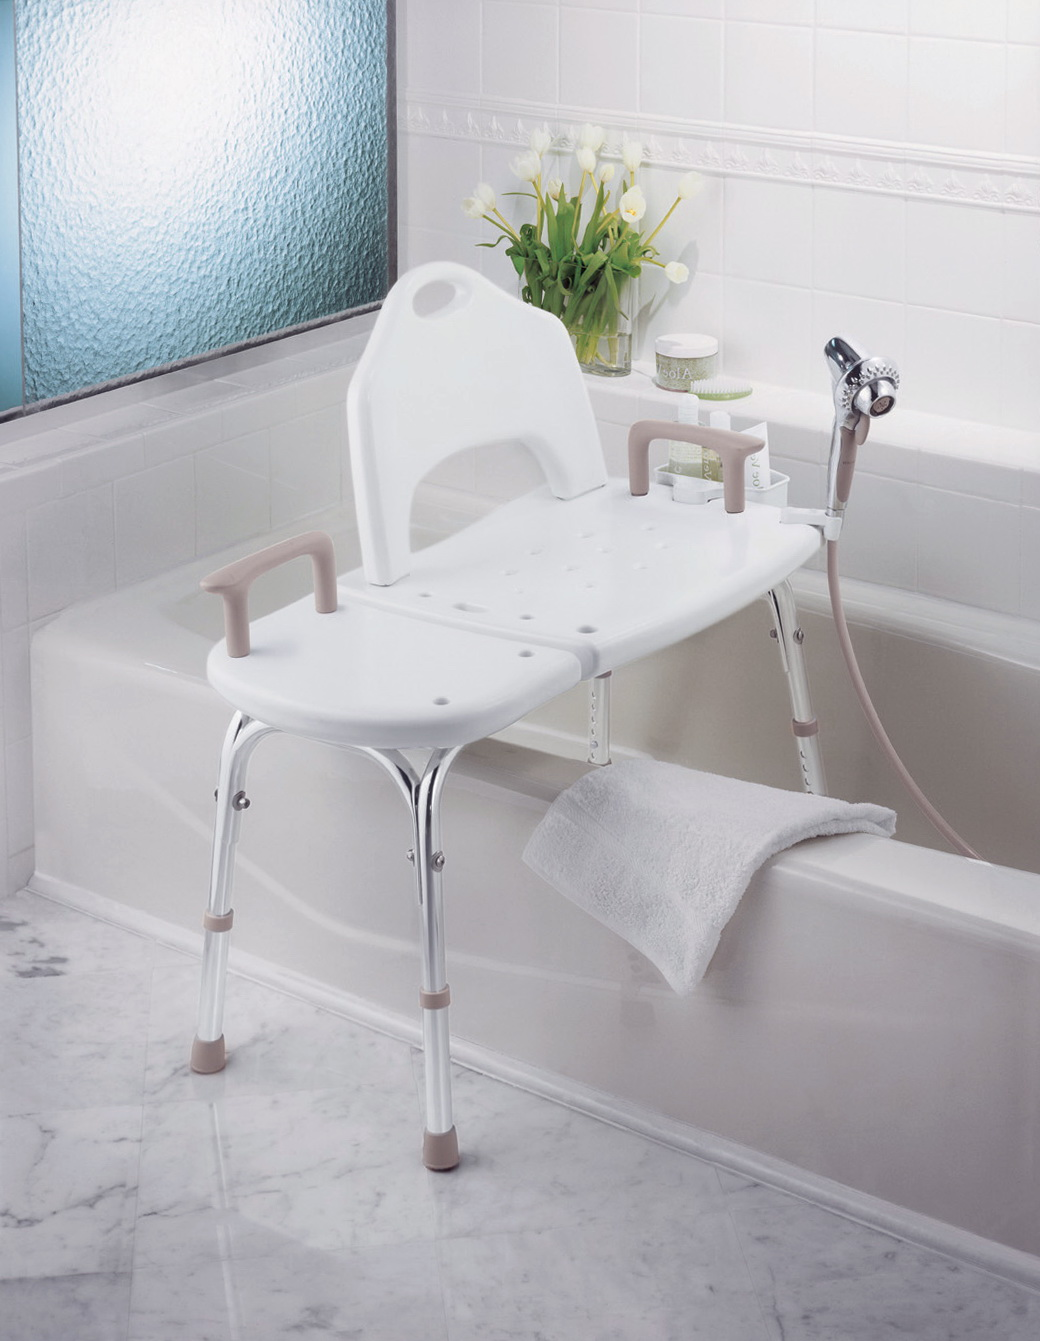 shower l p bath series and chair arms transfer with drive chairs bench premium back